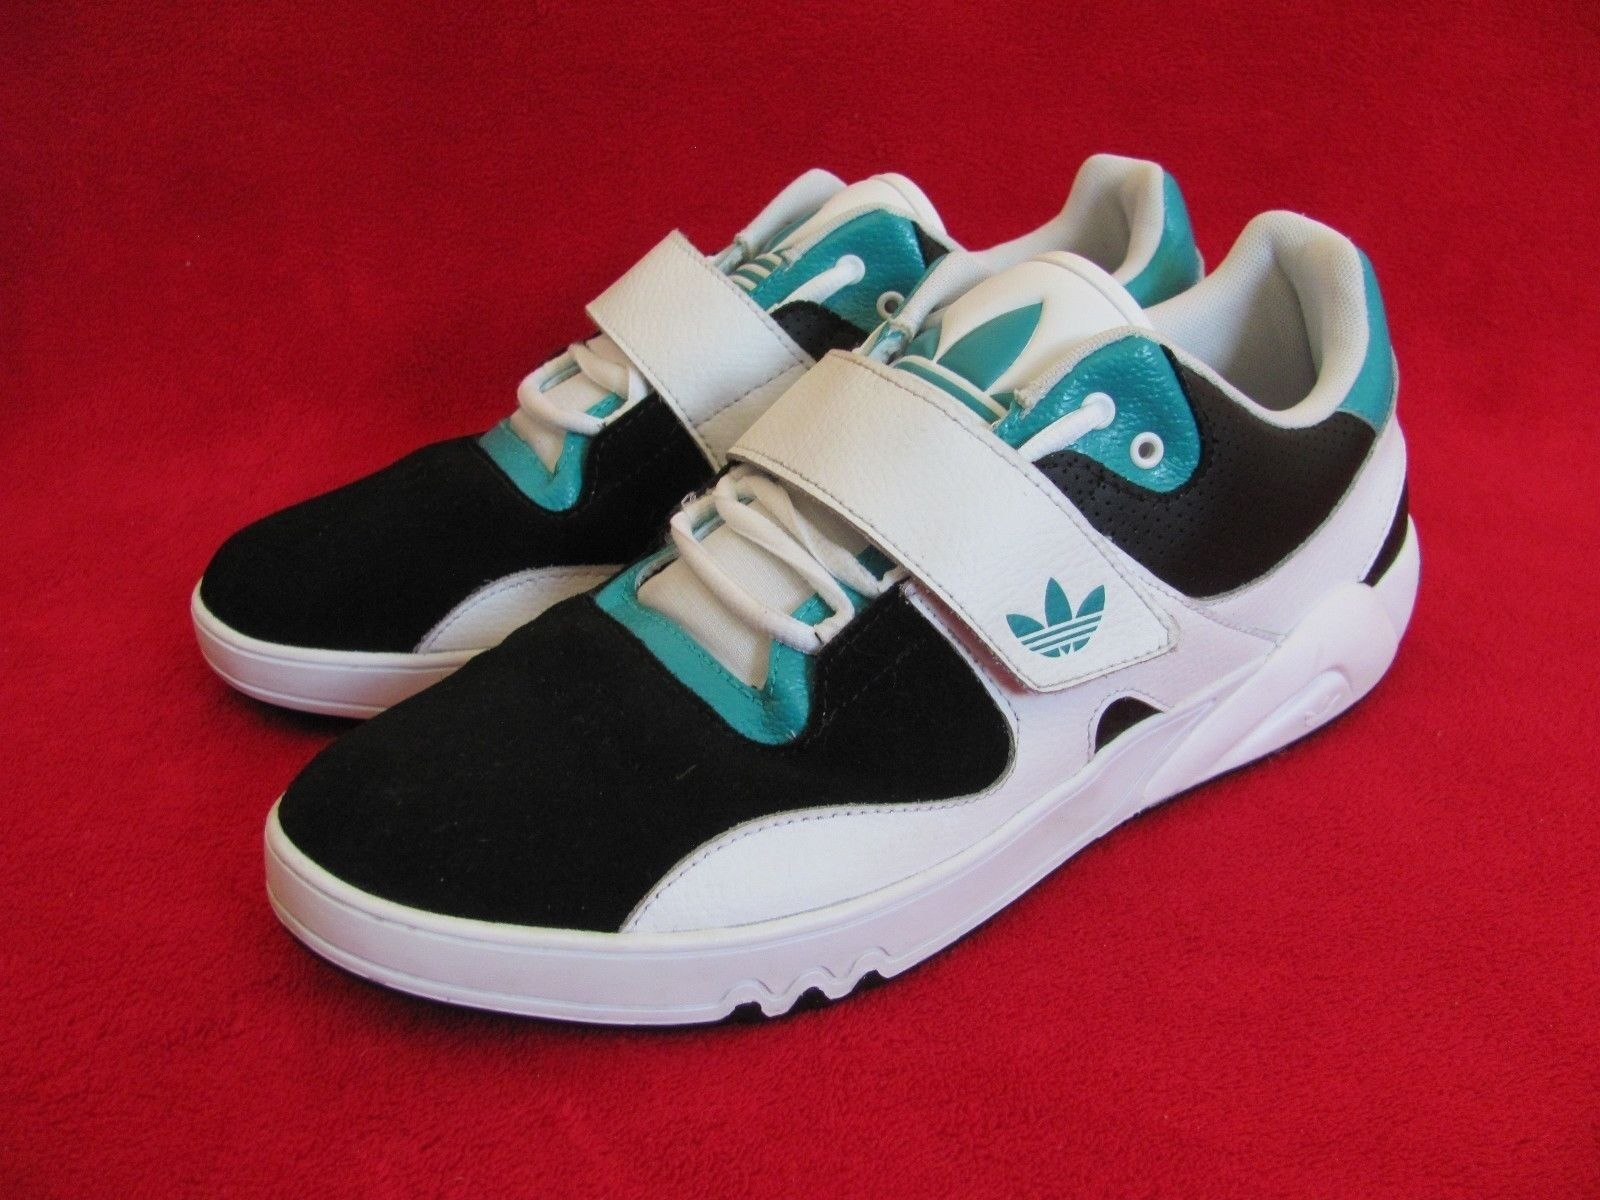 Adidas Round House Low Trainer  White Black Mint Green Basketball  Men's US 11.5